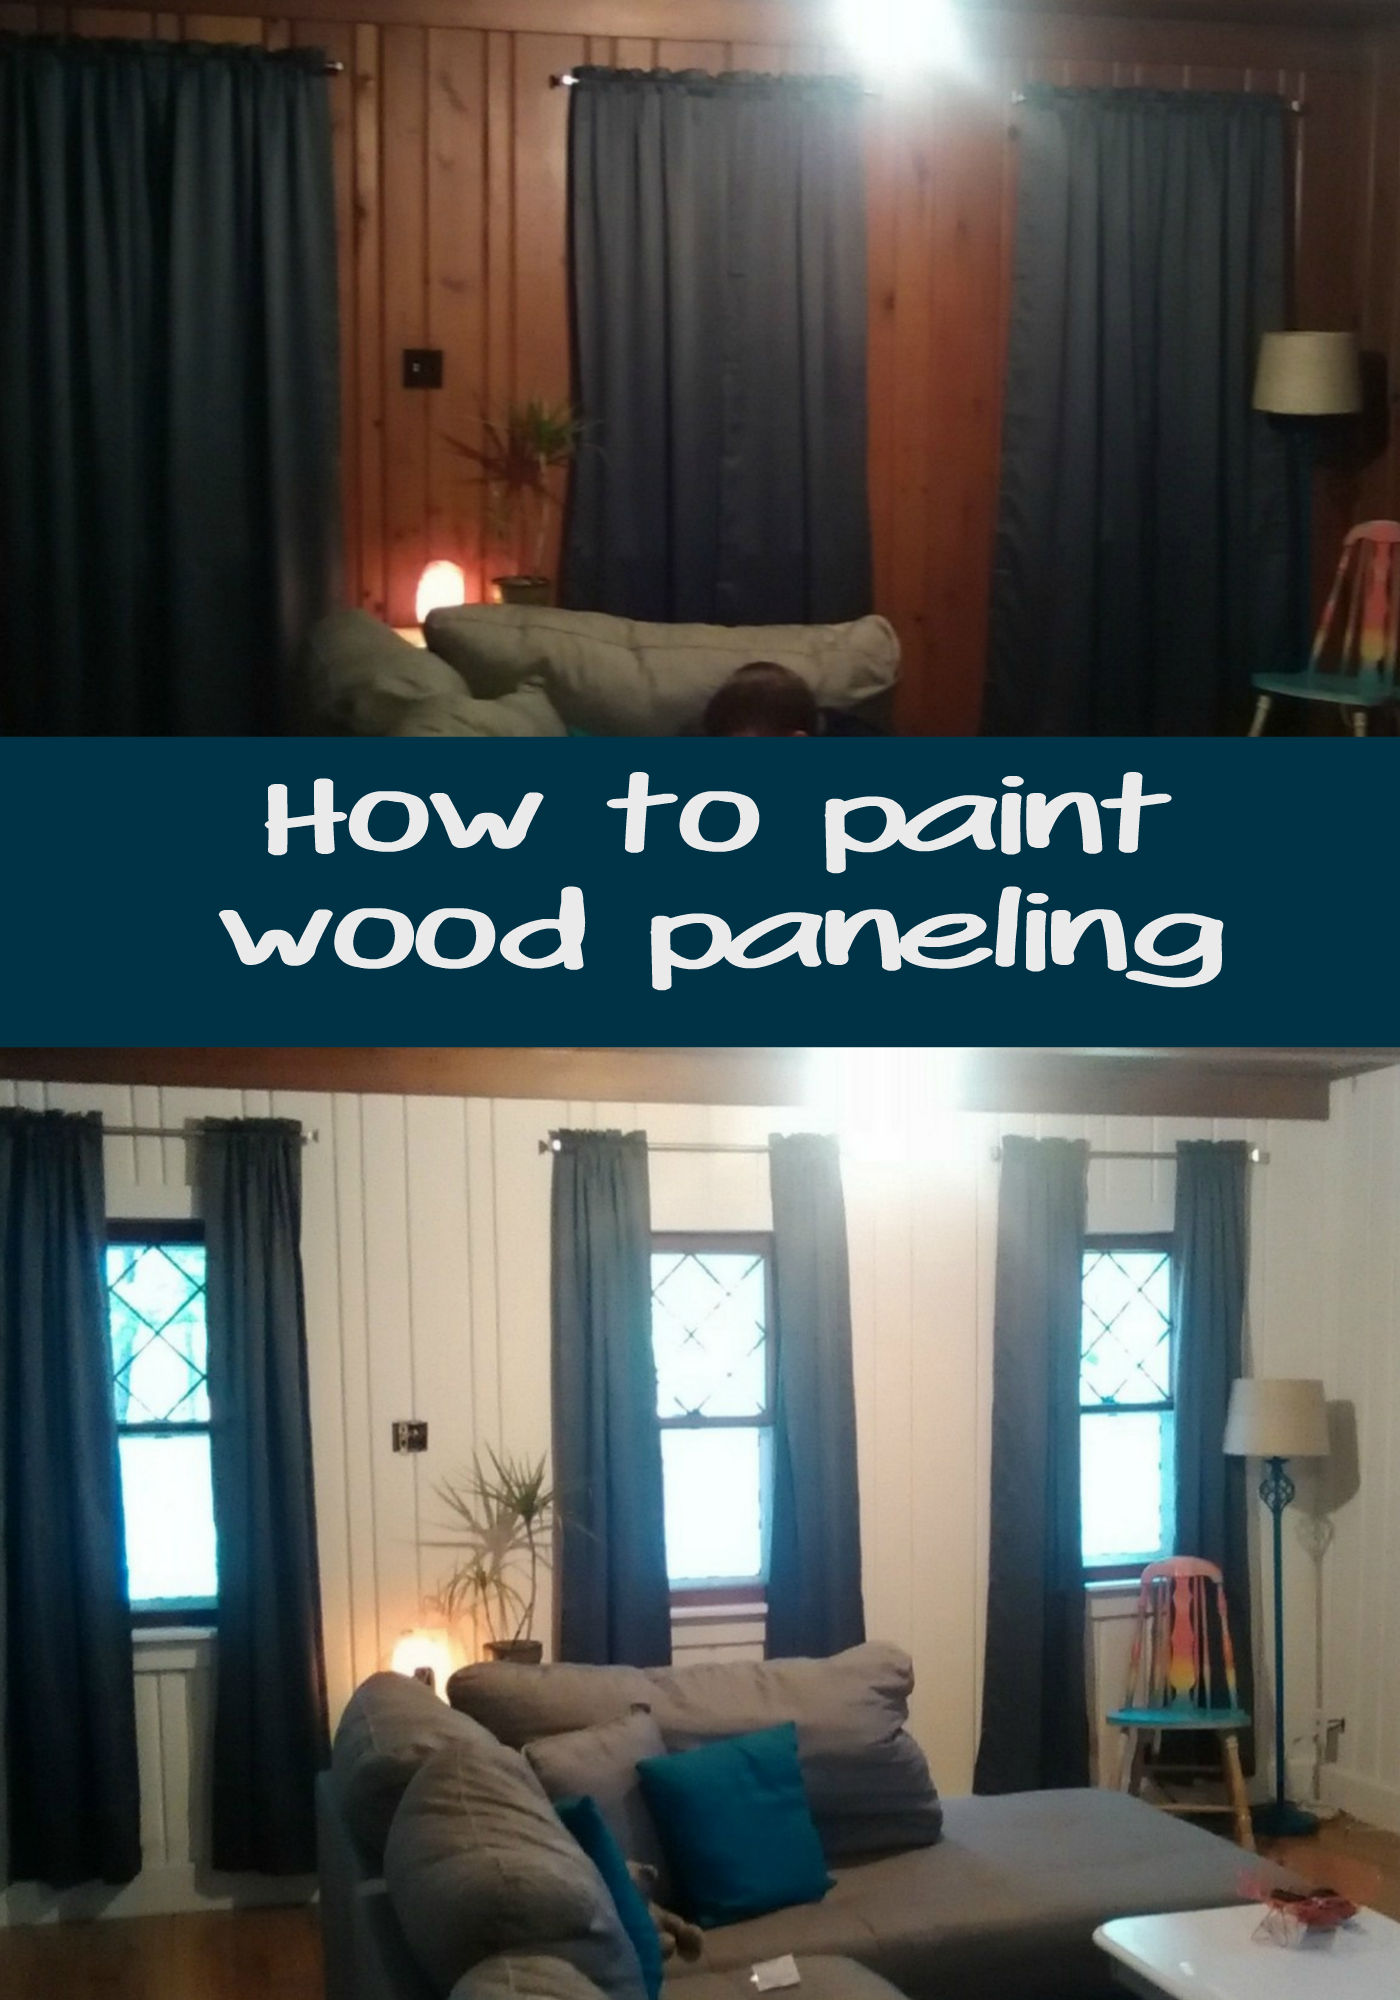 Paint Over Wood Paneling Walls: How To Paint Wood Paneling. DIY Painting Wood Paneling